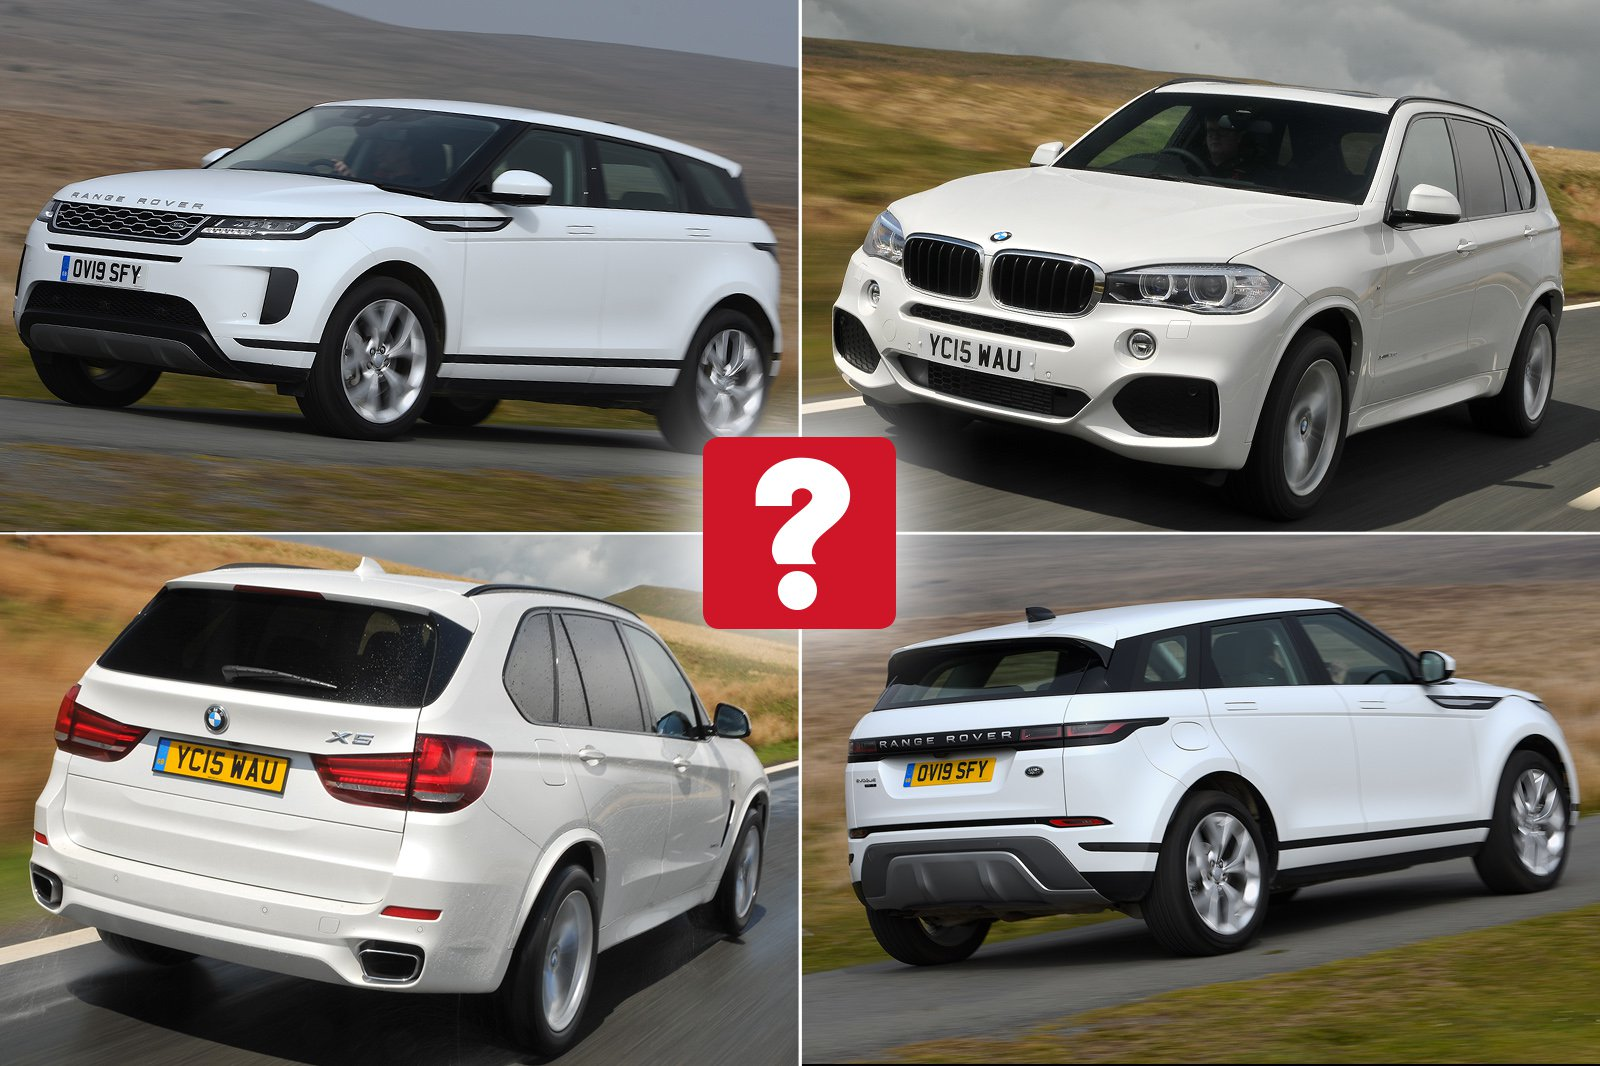 New Range Rover Evoque vs used BMW X5